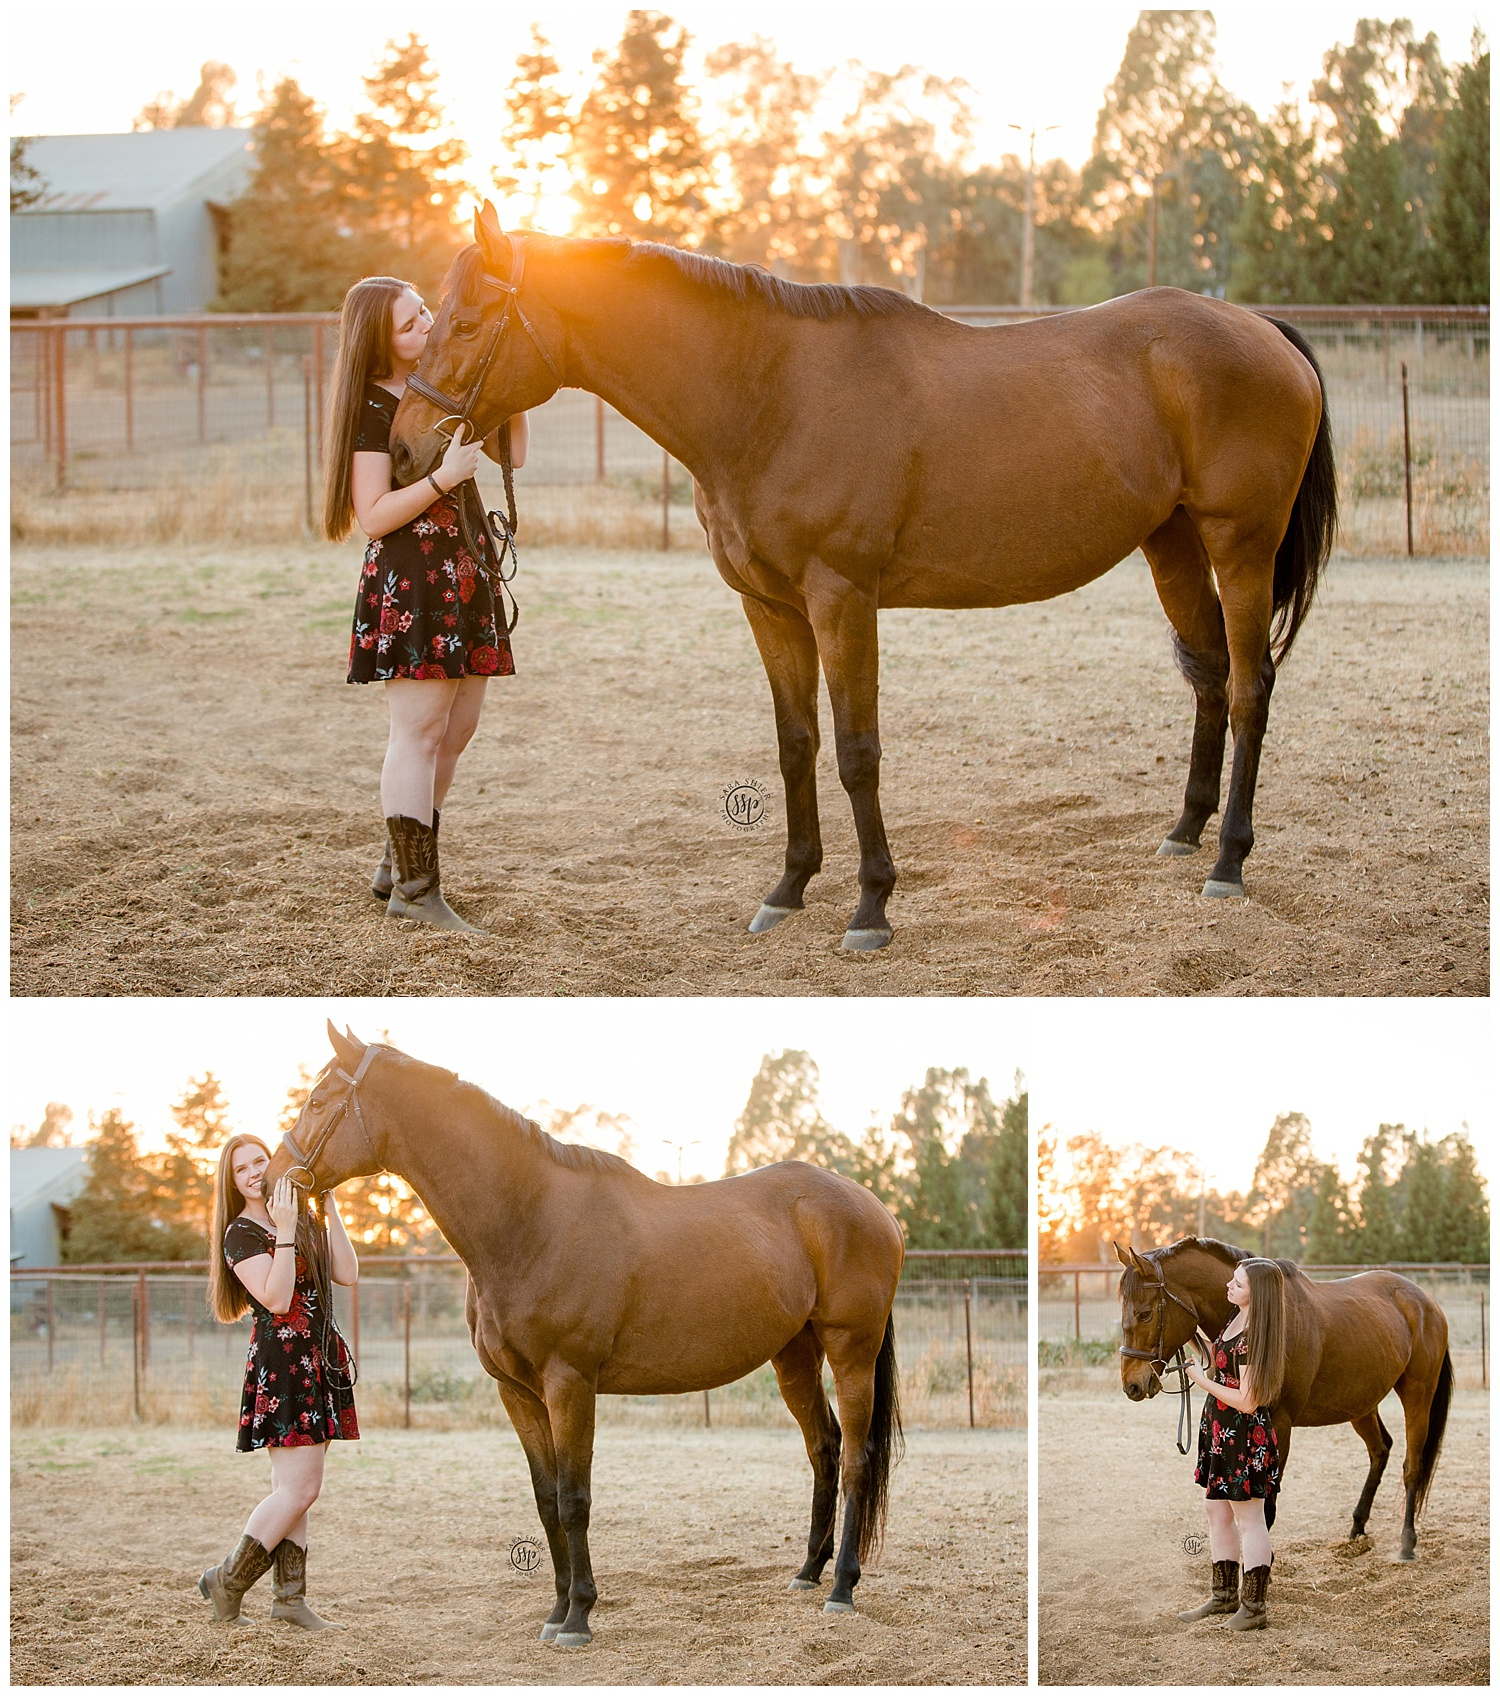 Black Background Horse Rider Equine Photographer Southern California Sara Shier Photography SoCal Equestrian Cowgirl_0050.jpg